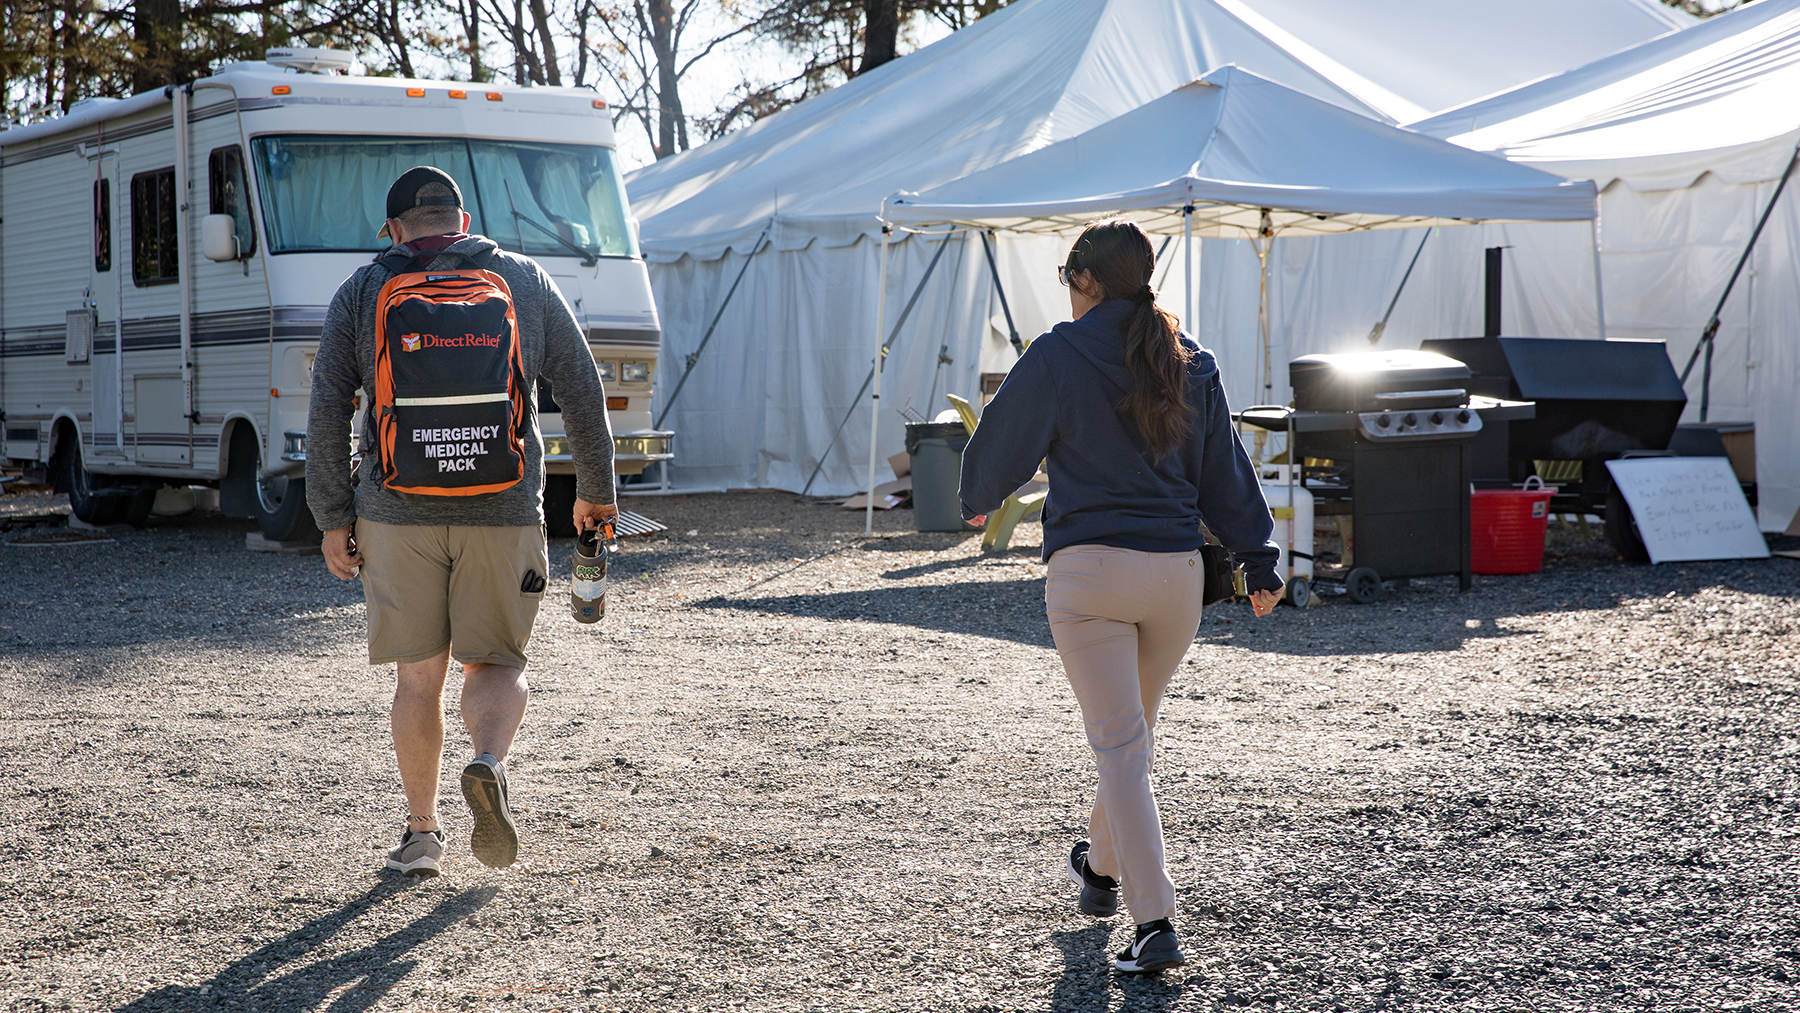 Paramedic Sean Biswun and another volunteer head toward a nearby parking lot where Camp Fire survivors are staying in RVs. (Mark Semegen for Direct Relief)